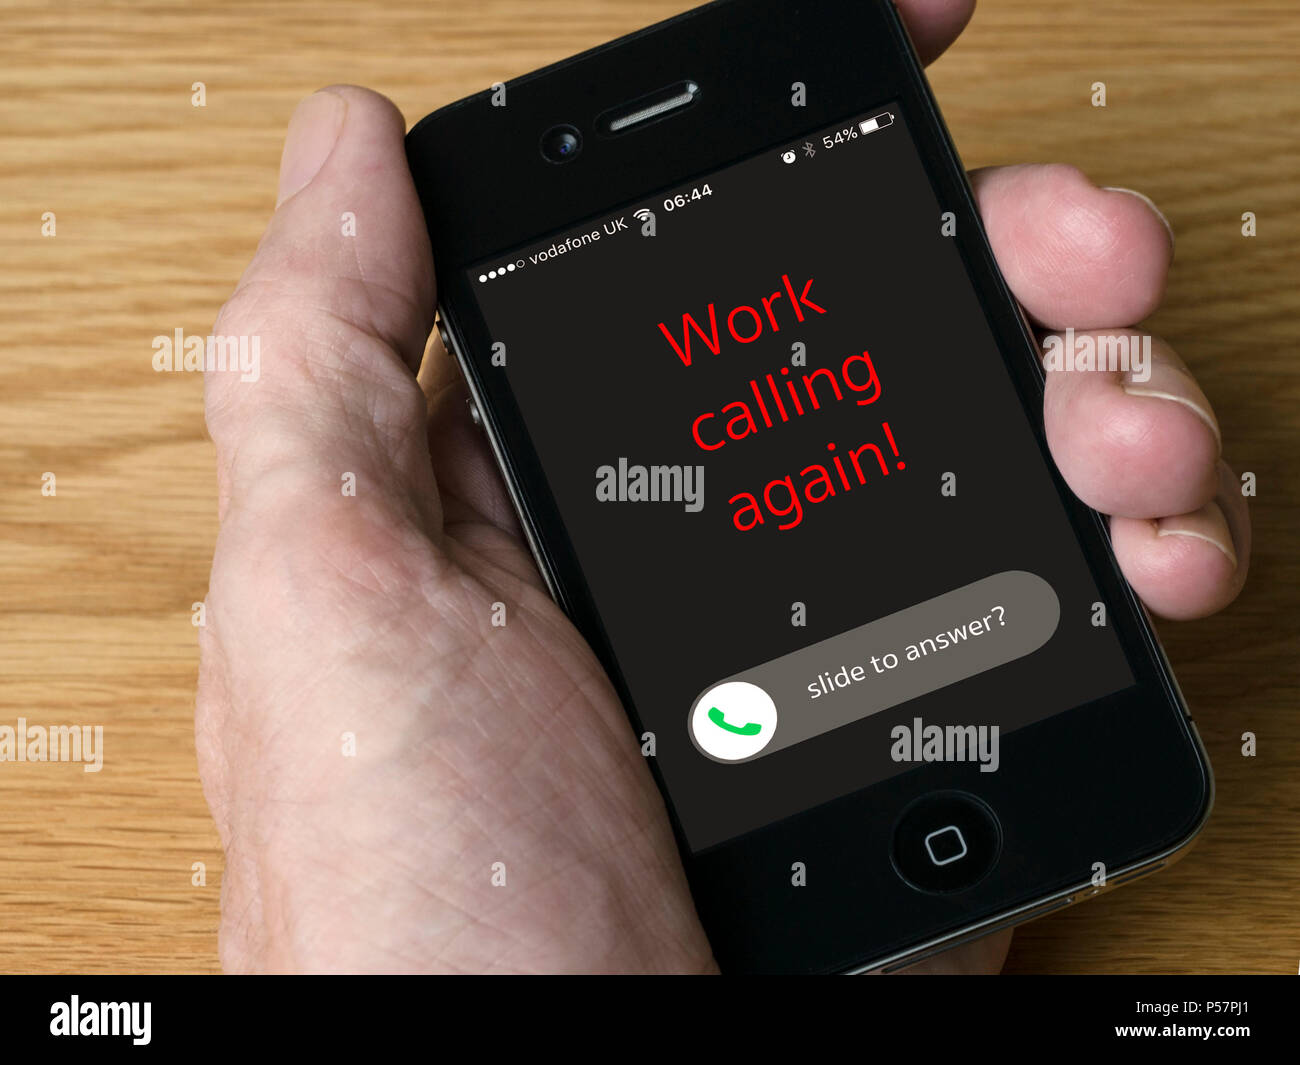 Concept image - incoming phonecall from work illustrating modern pressures on work life balance, the pressure of work, or stress of work - Stock Image